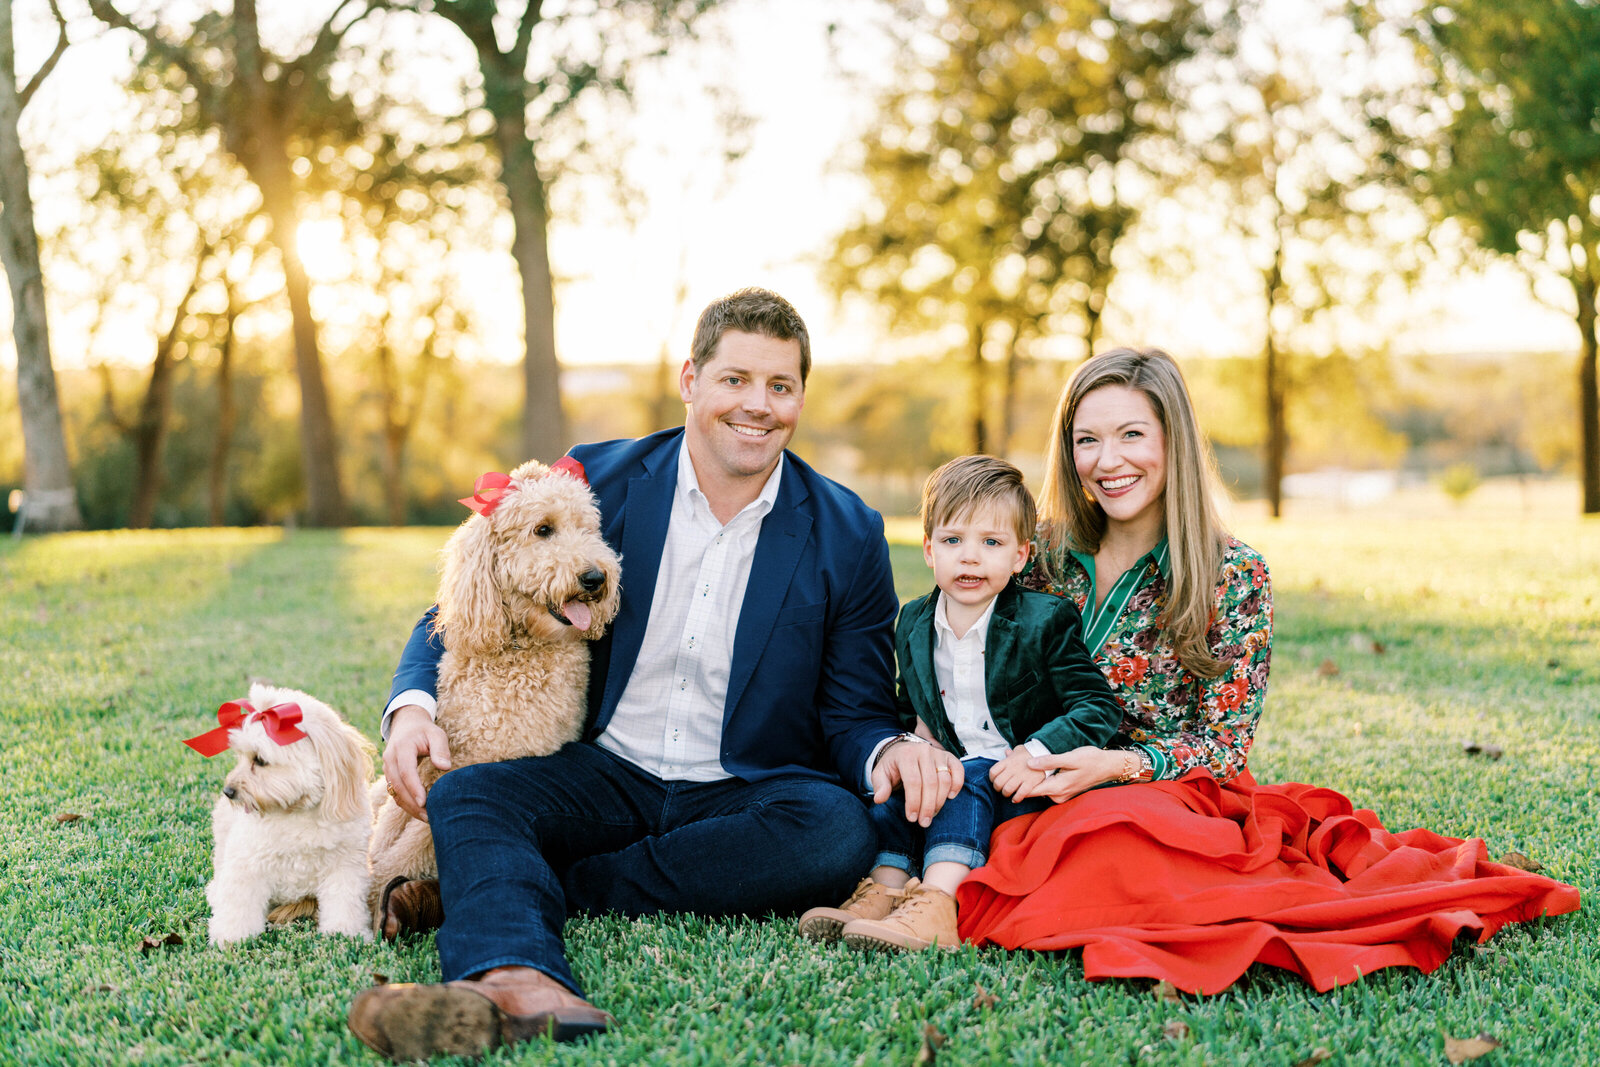 christinafrederick.com+_+Family+Photography+Session+_+Christina+Leigh+Frederick+Lifestyle+Blogger+_+Courtney+Leigh+Photography+_+Houston+Texas++